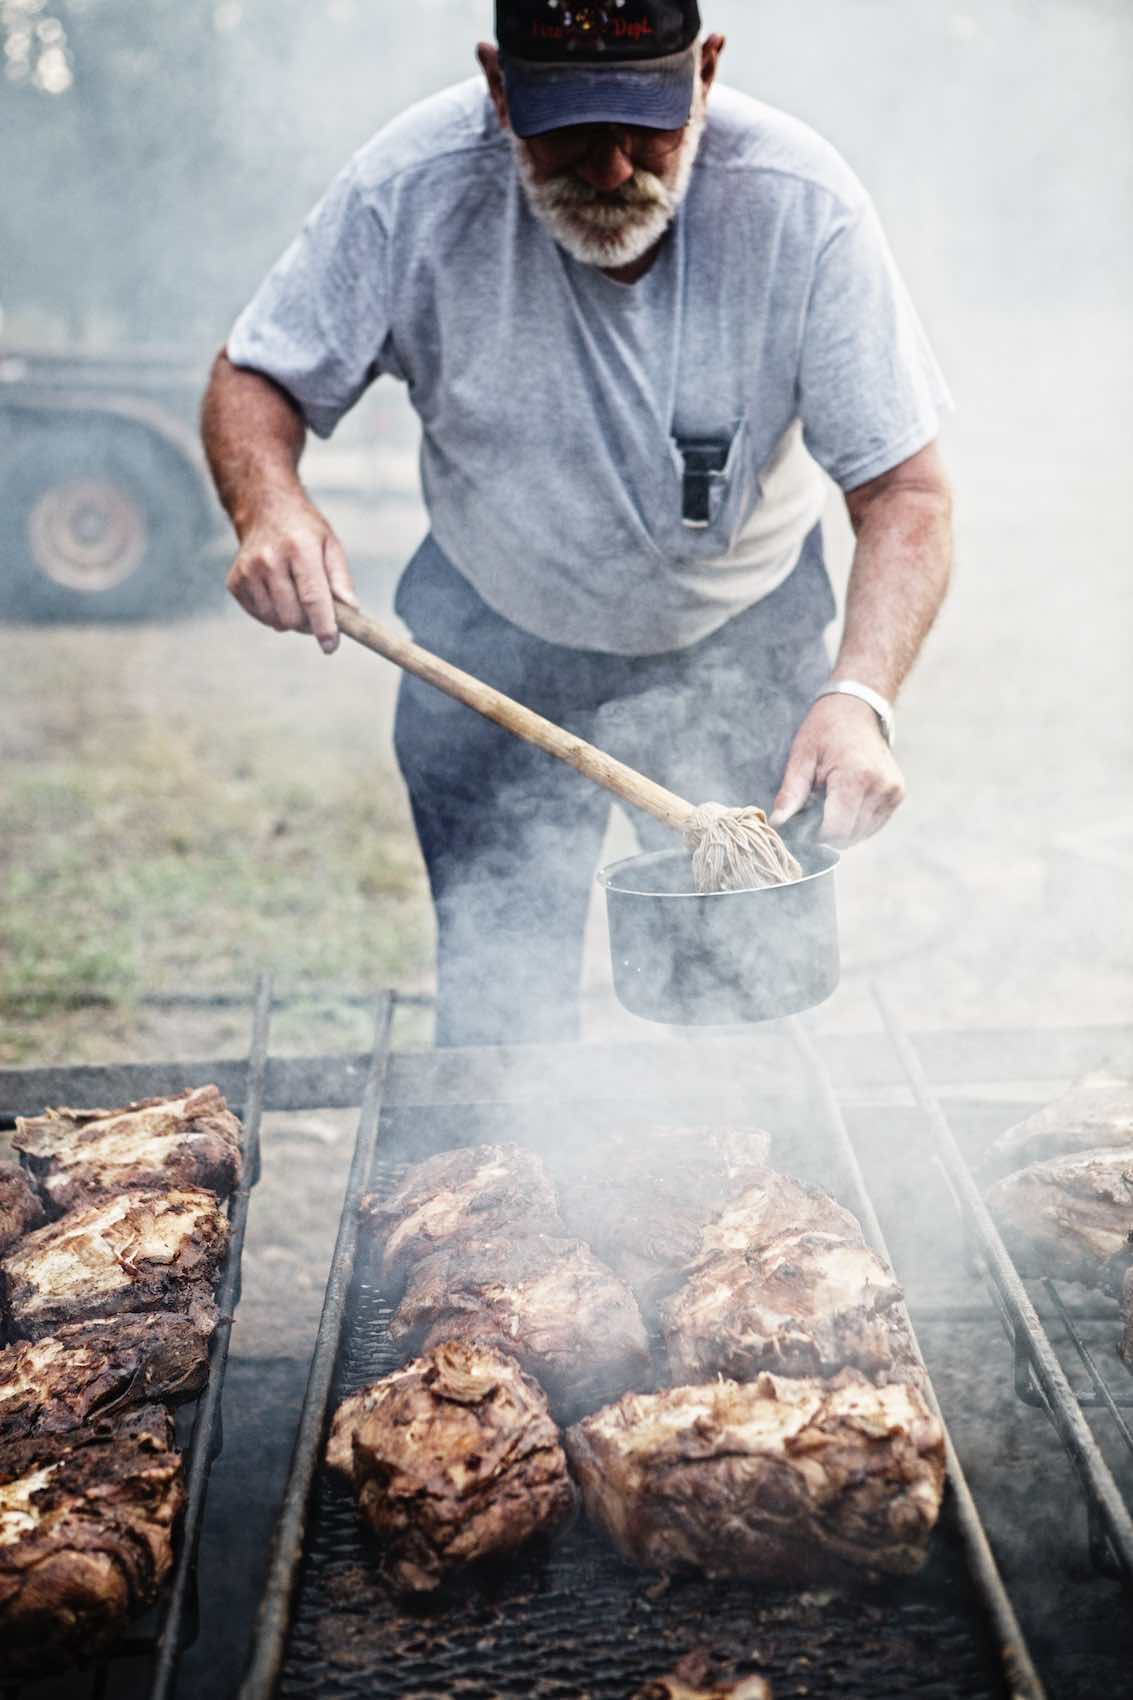 Jody Horton Photography - Cooking meats on outdoor smoker.